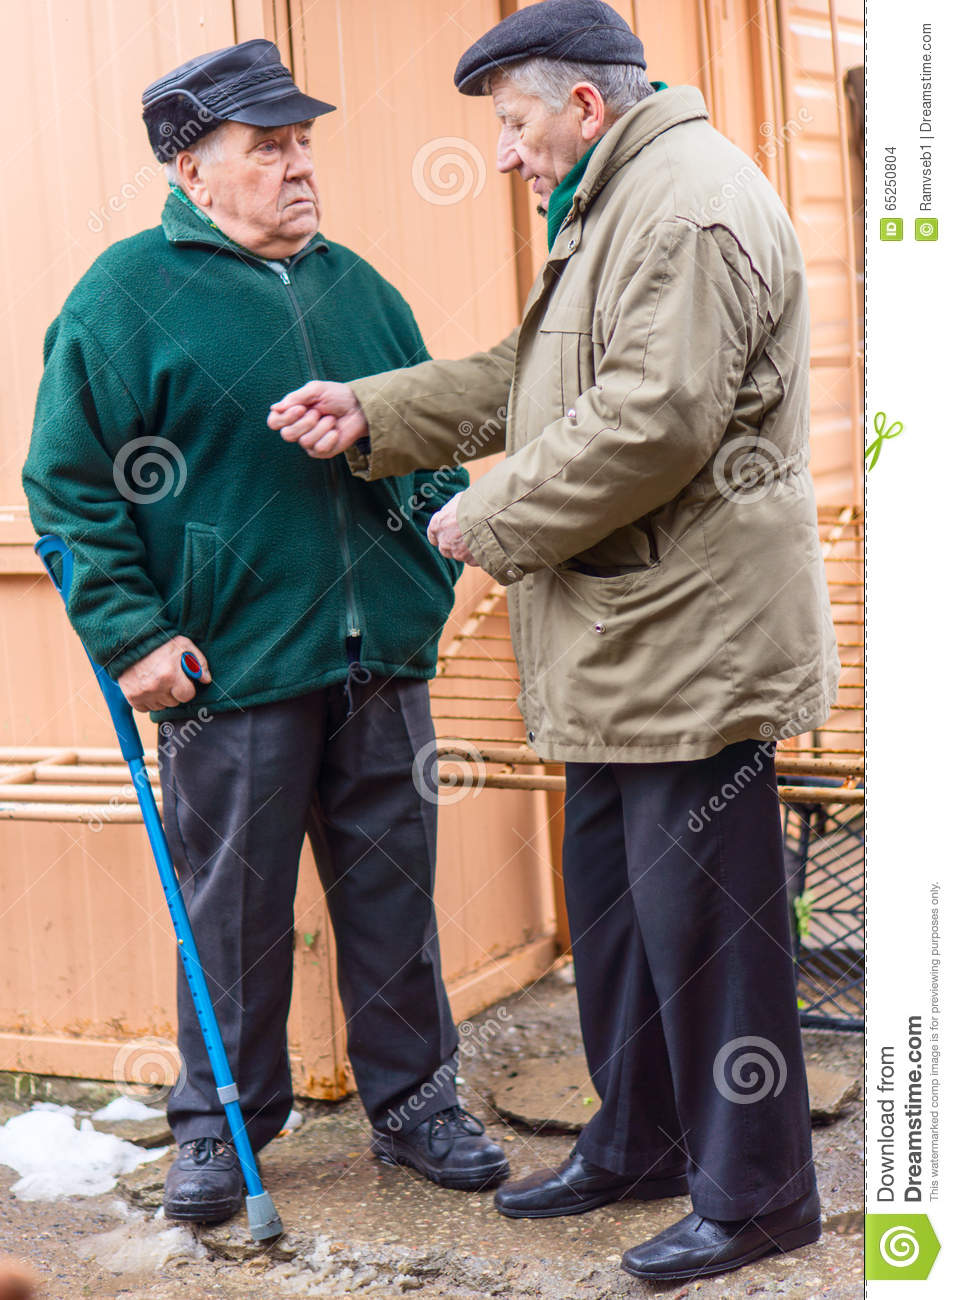 Two aged men discuss in the street